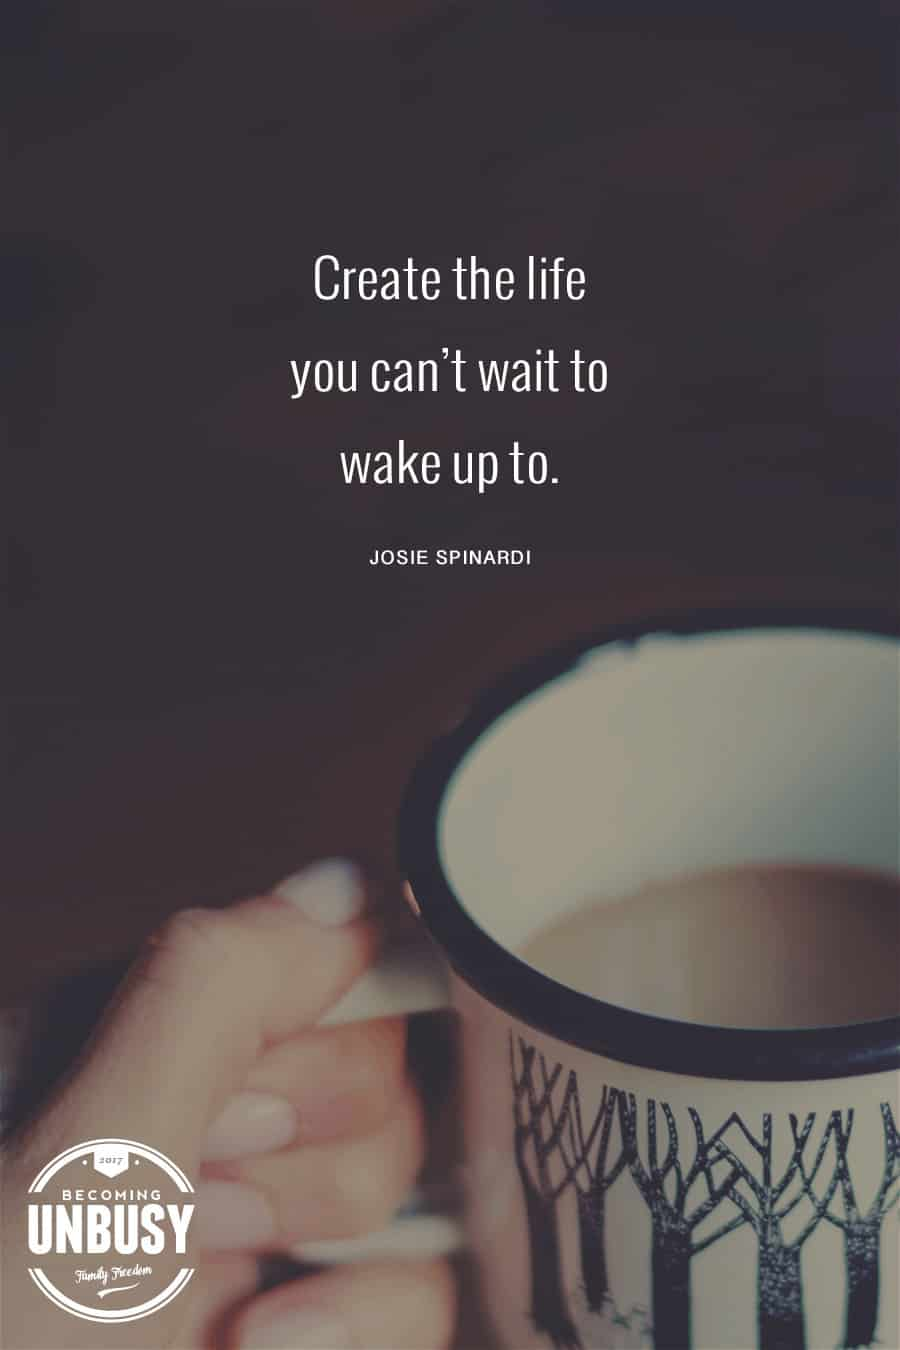 10 Good Morning Quotes - Create the life you can't wait to wake up to. #lifequotes #quotes #goodmorningquotes #coffeequotes *Start the day off right with these morning inspirational quotes. Love this good morning motivation!